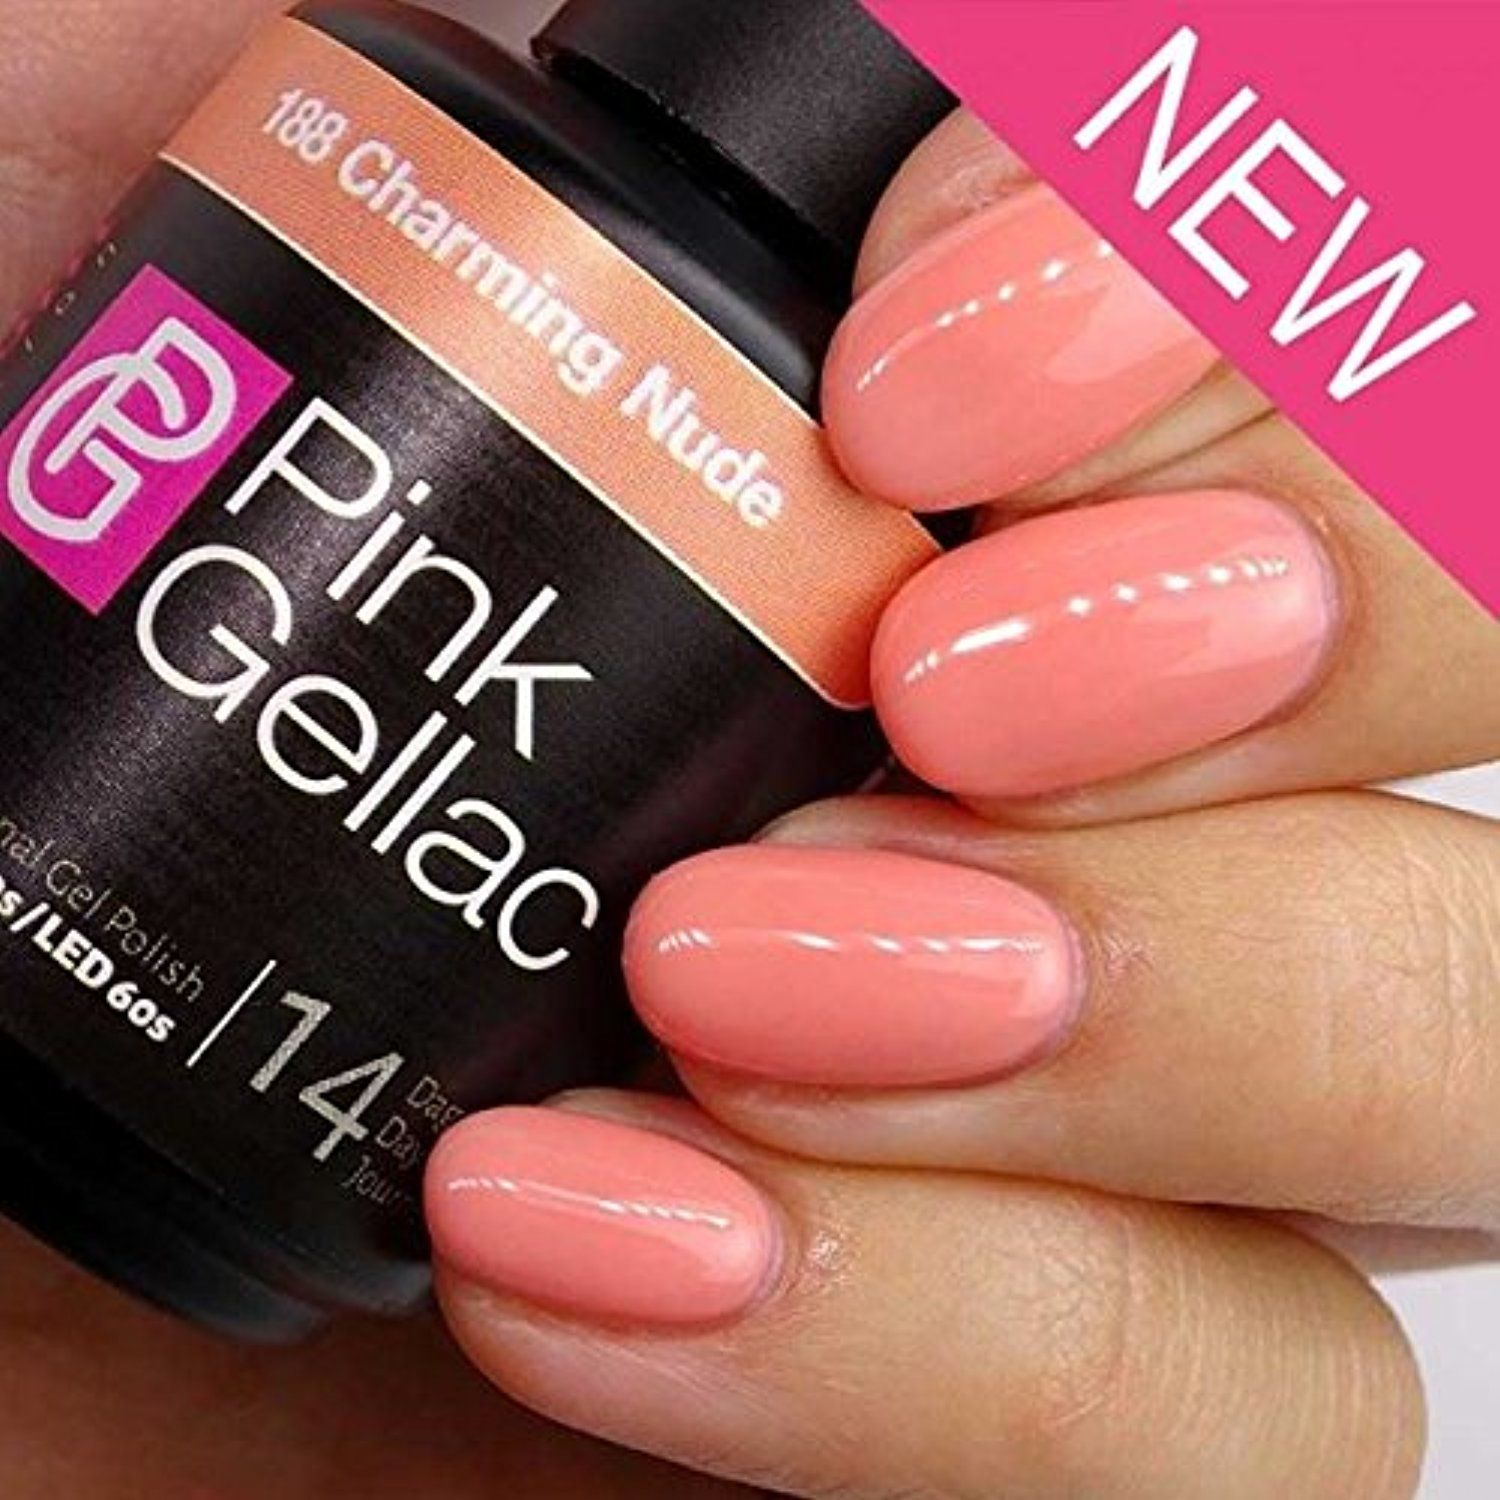 Pink Gellac #FootHandNailCare | Foot, Hand & Nail Care | Pinterest ...